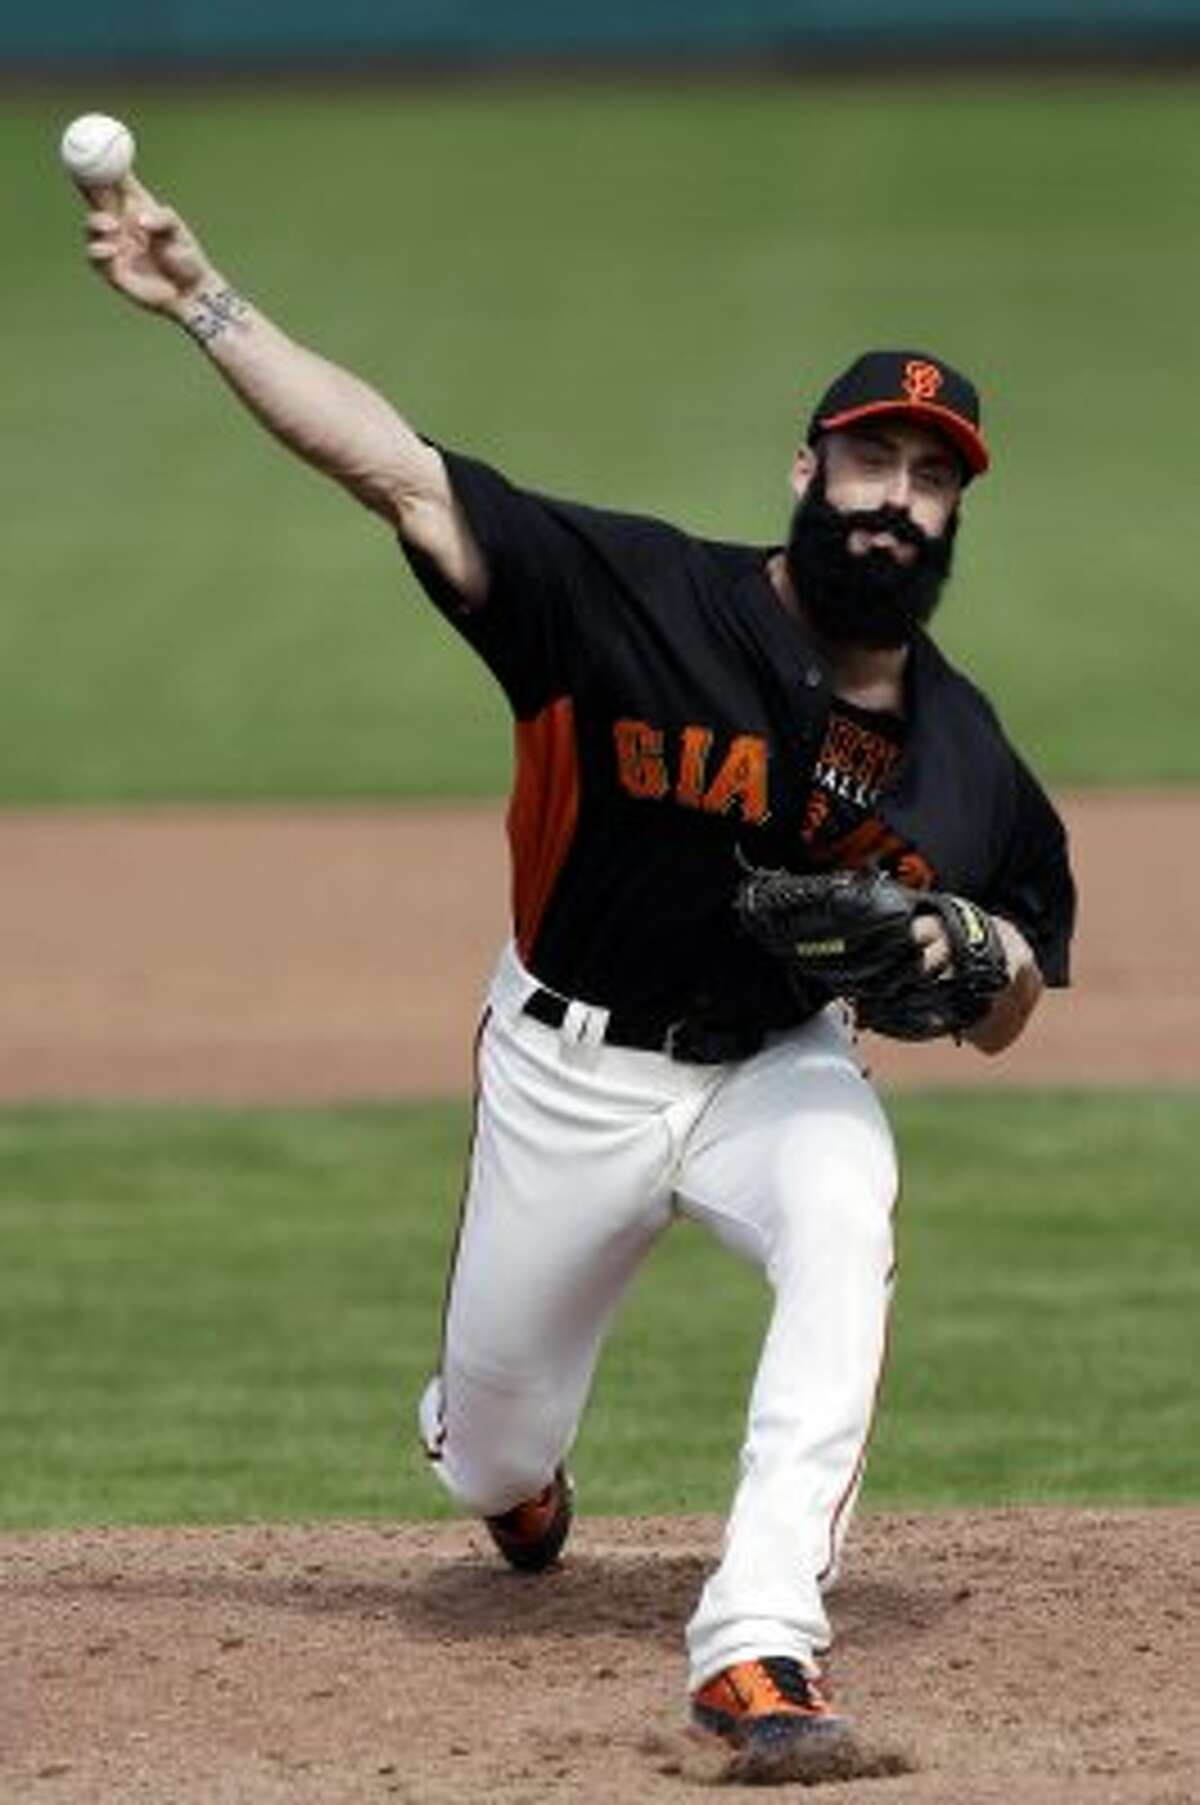 San Francisco Giants pitcher Brian Wilson throws to the Seattle Mariners during the fourth inning of a spring training baseball game. (Marcio Jose Sanchez / Associated Press)